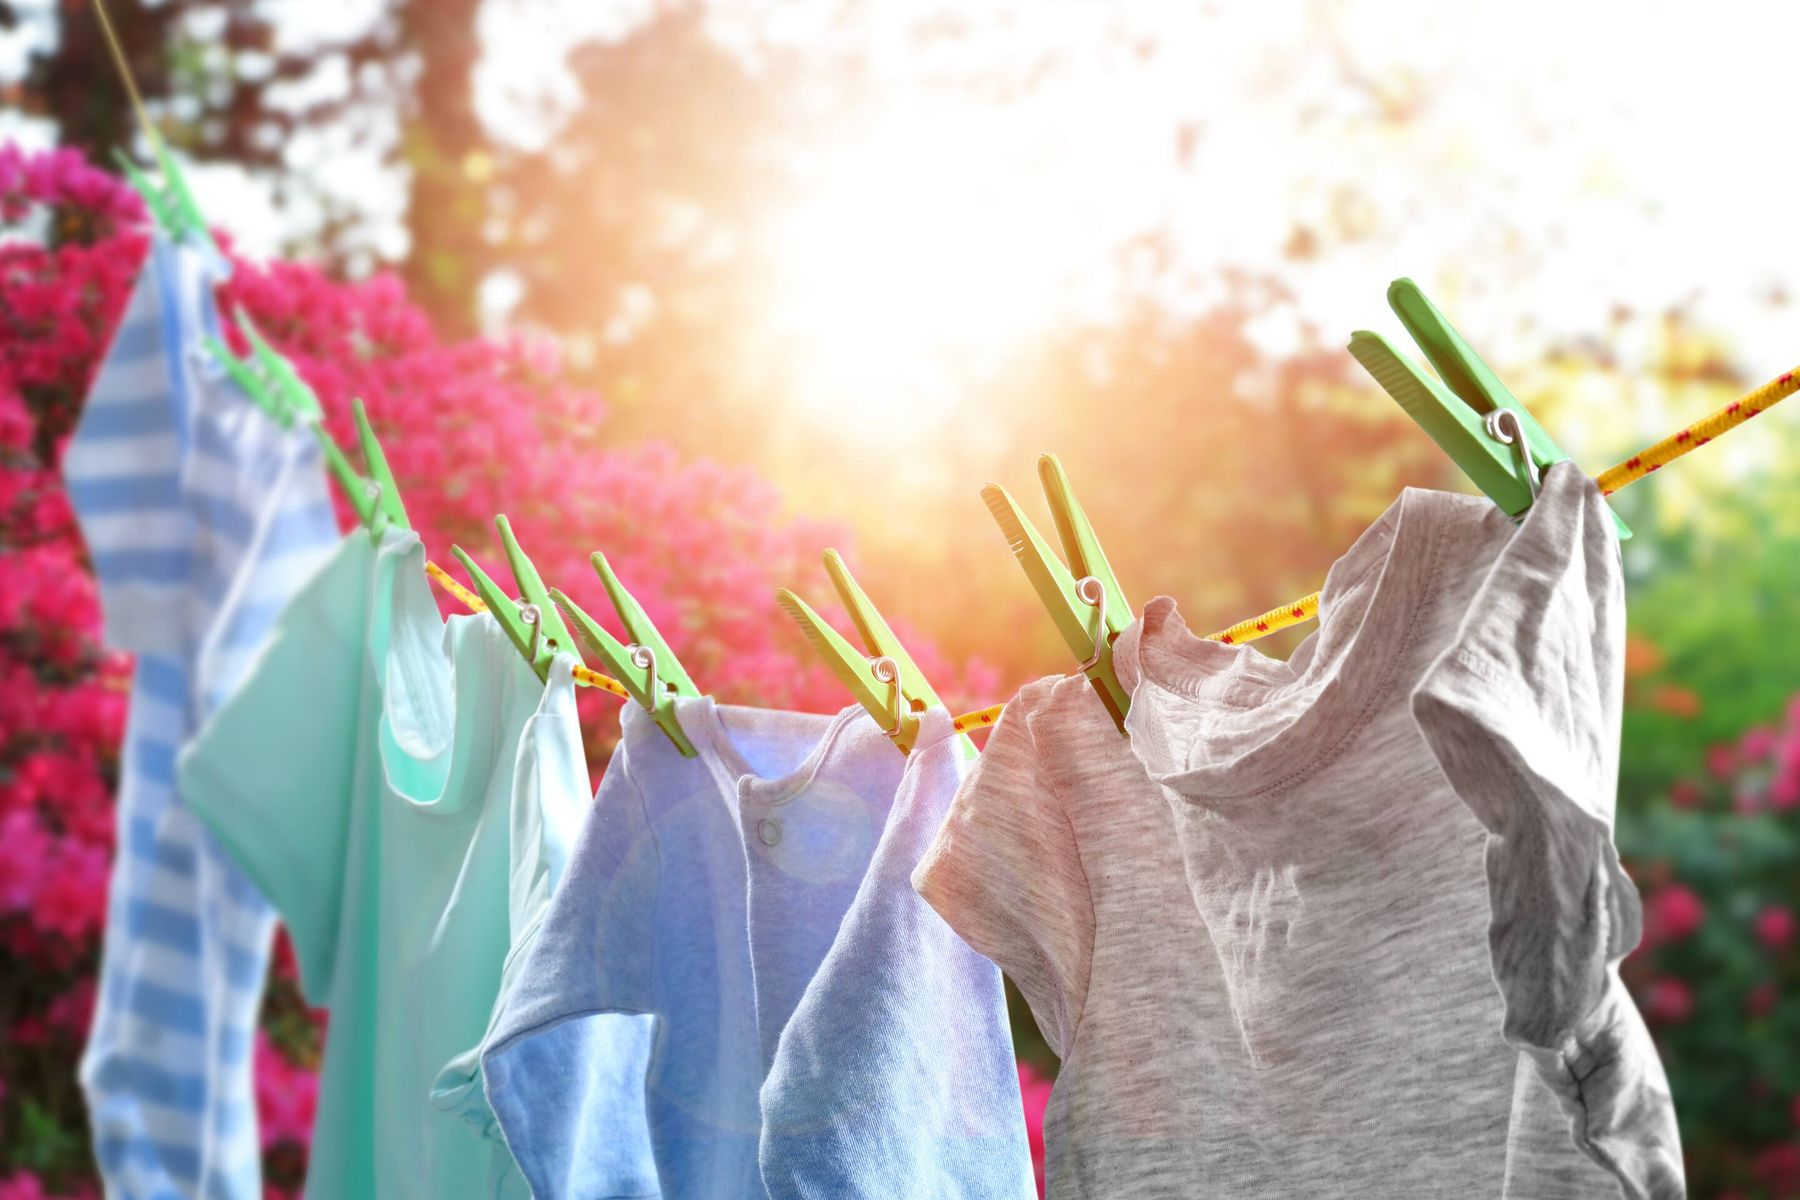 Dampness making your clothes smell funny? Here are some easy ways to get rid of the dampodour